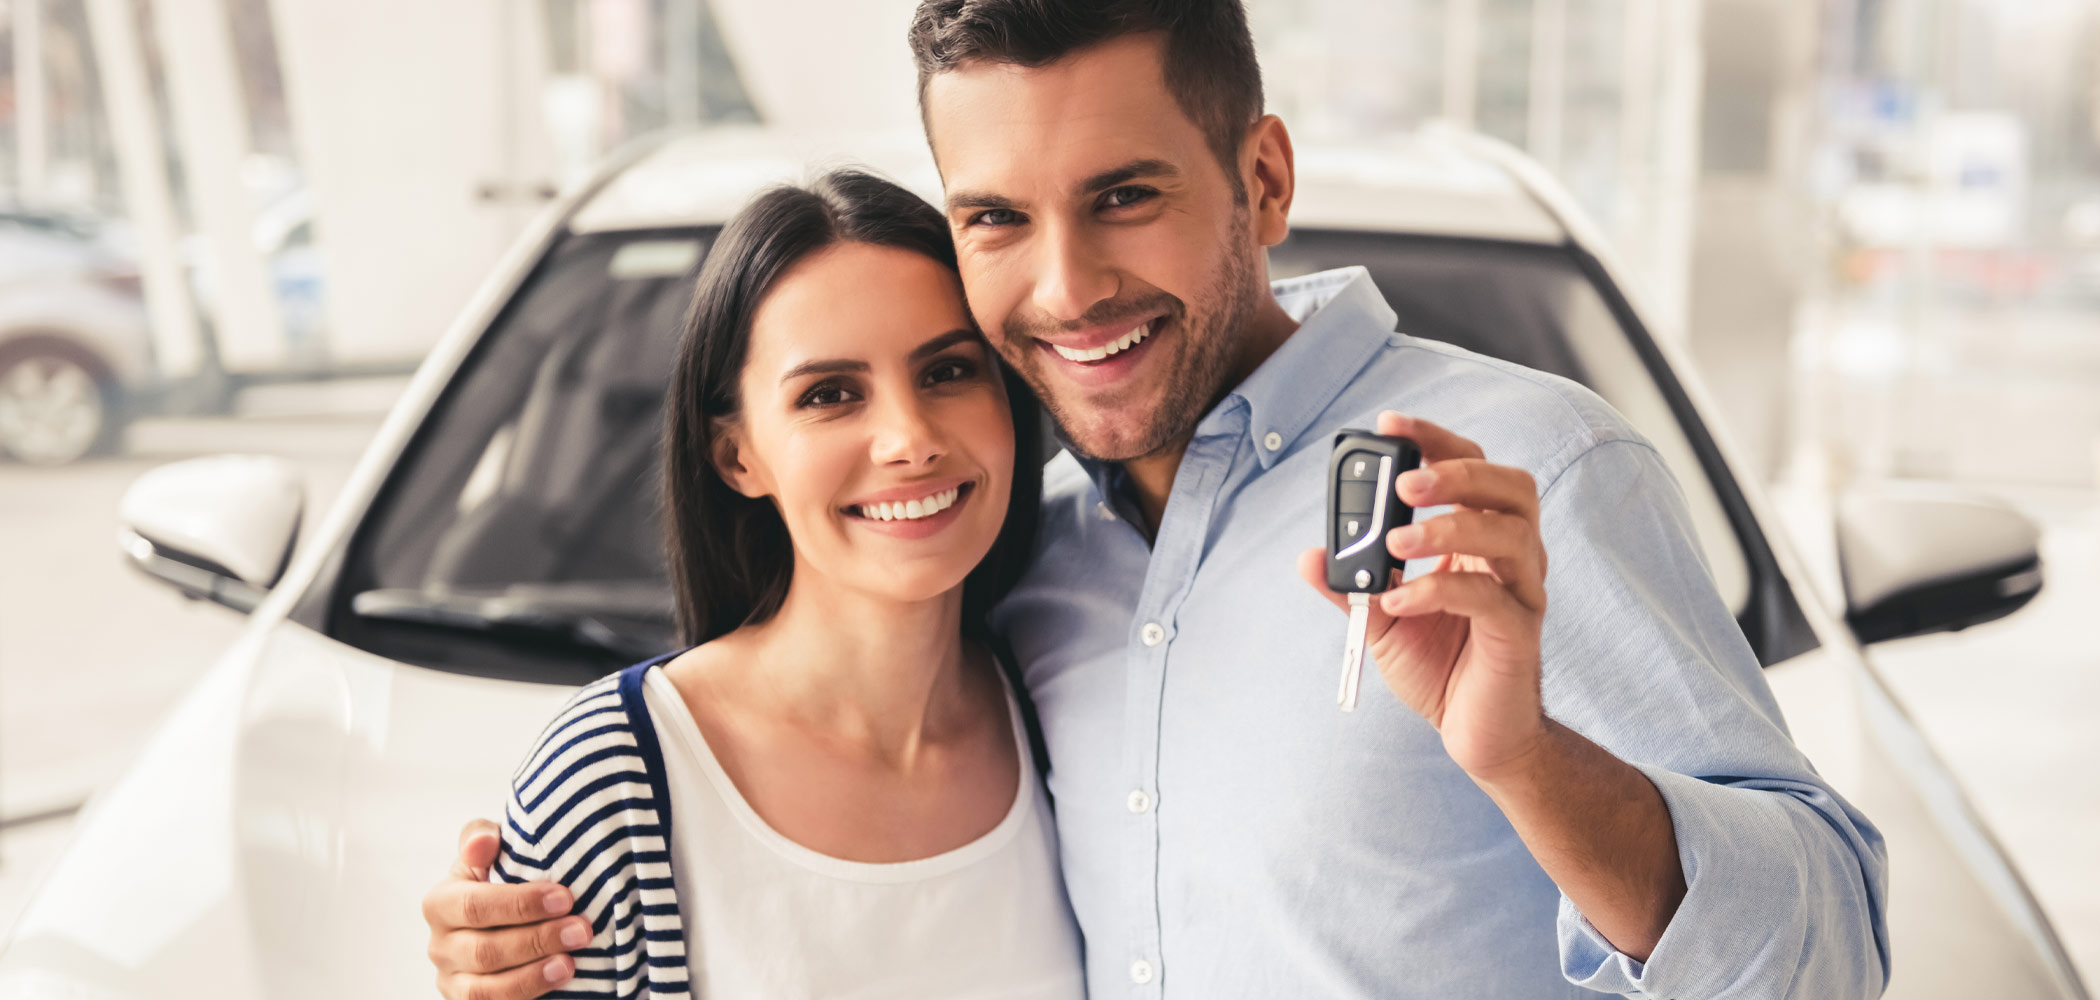 Man and woman with new car keys